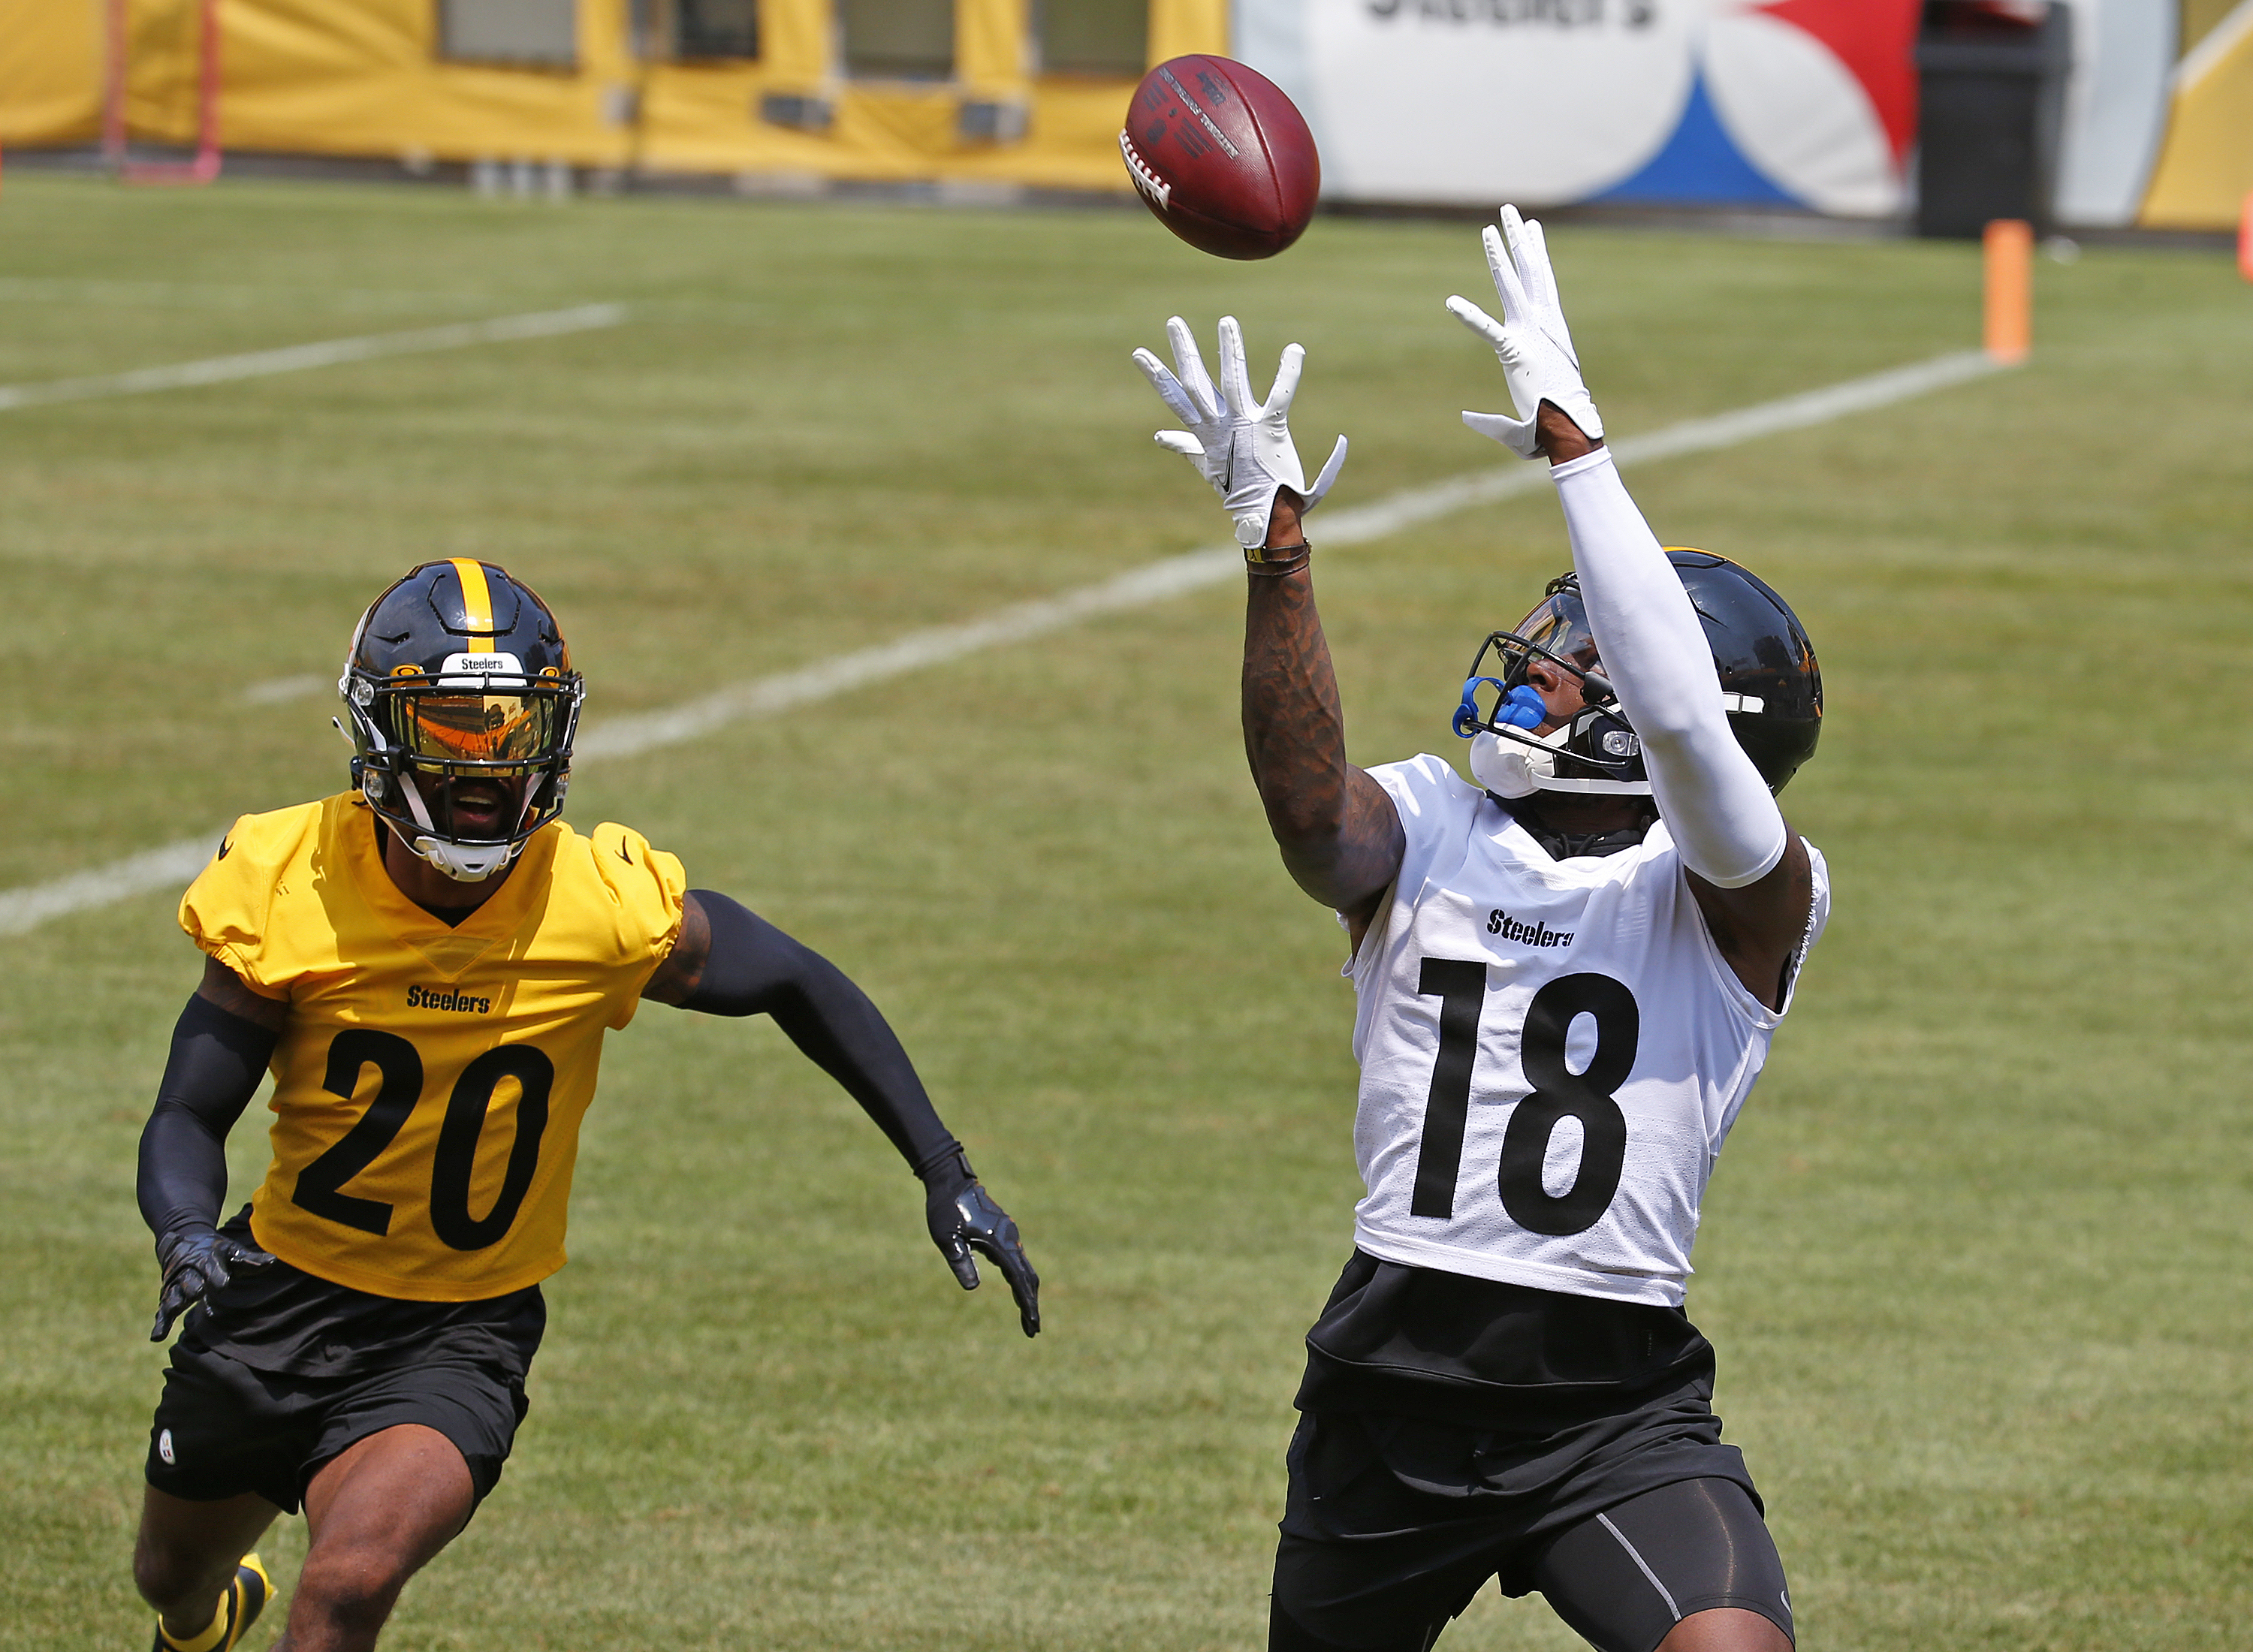 Diontae Johnson #18 of the Pittsburgh Steelers in action against Cameron Sutton #20 of the Pittsburgh Steelers during training camp at Heinz Field on July 29, 2021 in Pittsburgh, Pennsylvania.